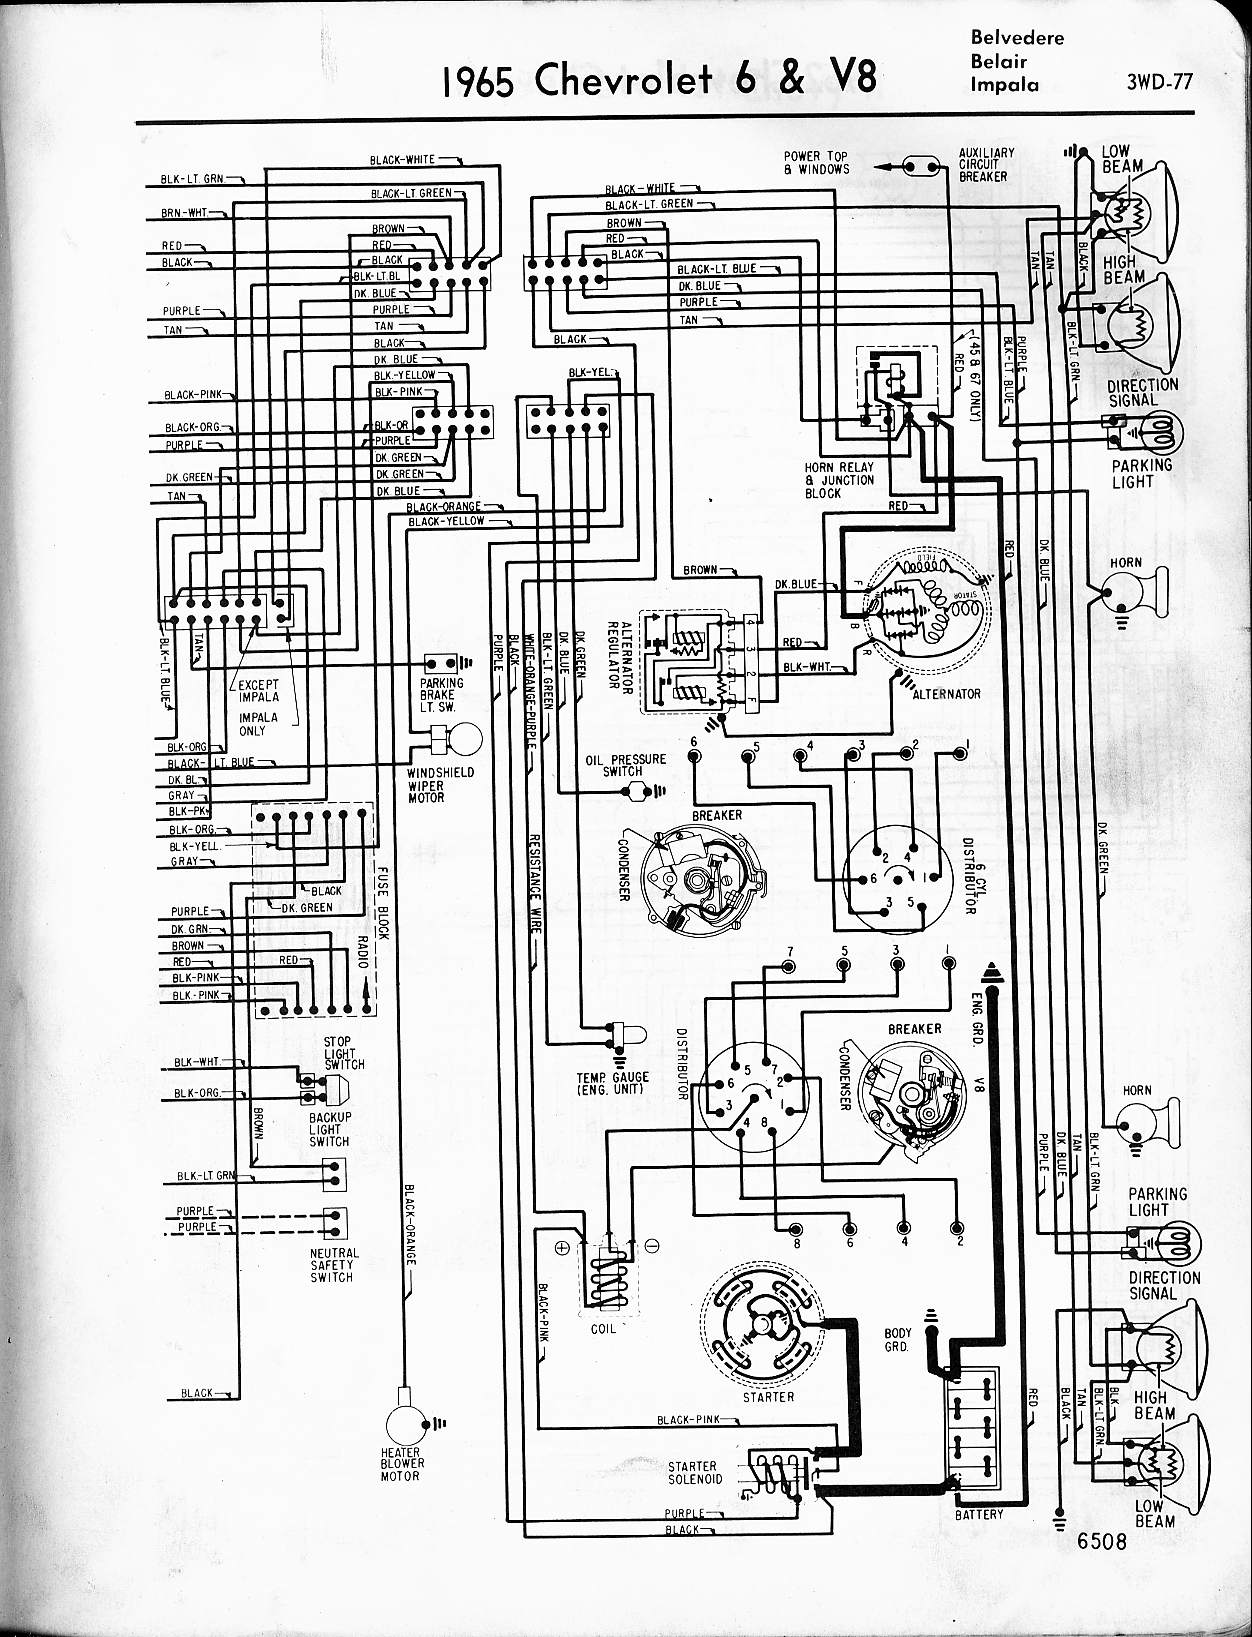 ss chevelle dash wiring diagram 7 wiring diagrams1969 chevelle dash wiring diagram data schema ss chevelle dash wiring diagram 7